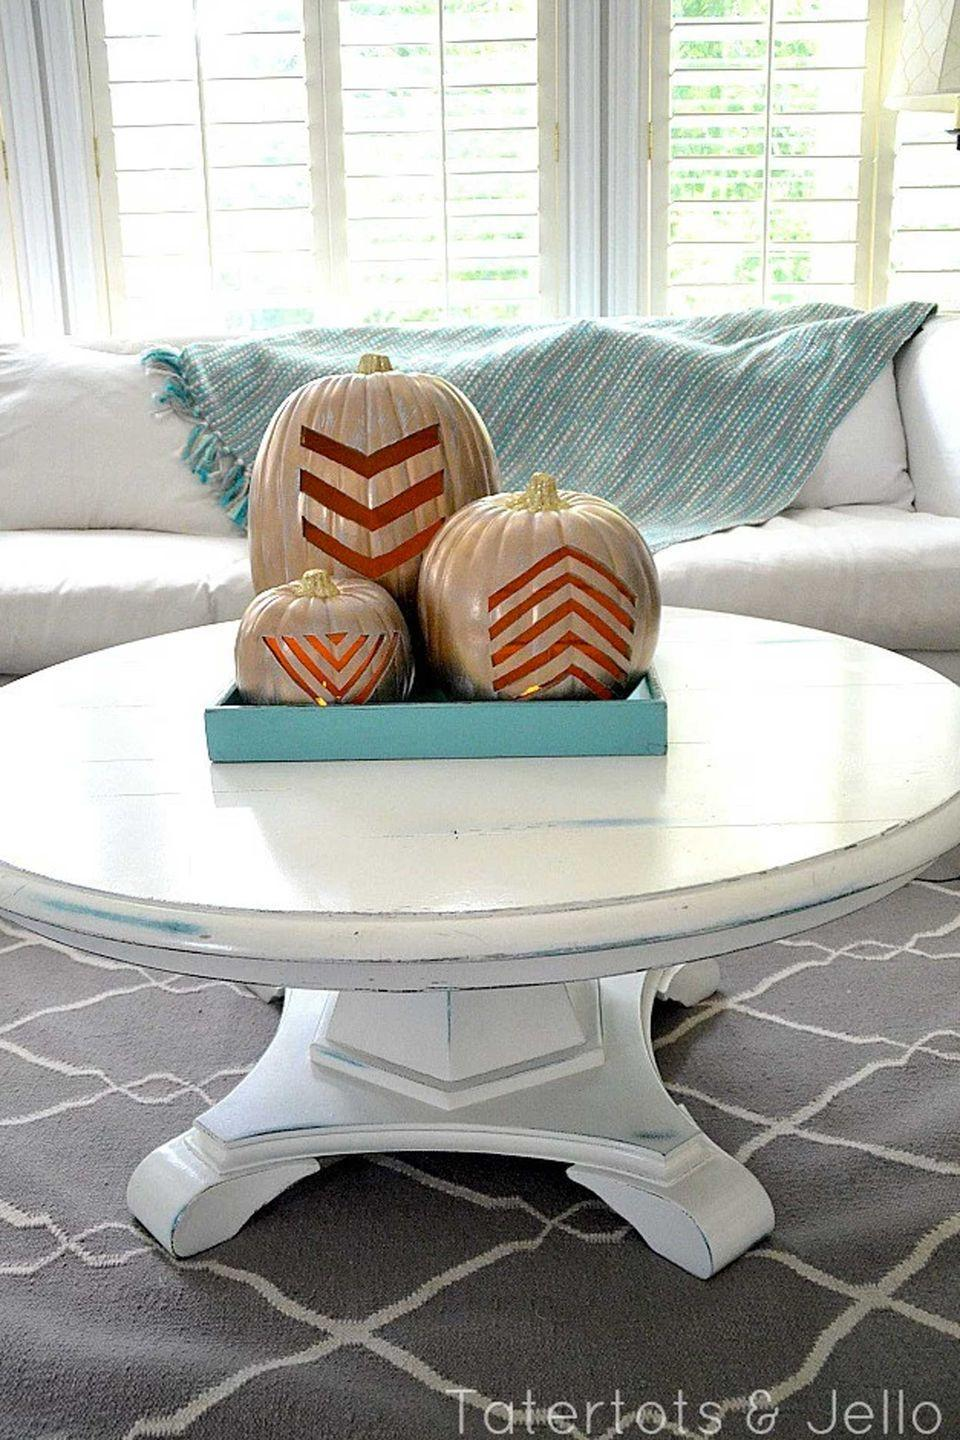 "<p>Pumpkins aren't just for the porch—with some gold spray paint, you can make them look living-room ready.</p><p><strong>Get the tutorial at <a href=""http://tatertotsandjello.com/2013/09/make-gold-carvable-geometric-pumpkins-fall.html"" rel=""nofollow noopener"" target=""_blank"" data-ylk=""slk:Tatertots & Jello"" class=""link rapid-noclick-resp"">Tatertots & Jello</a>.</strong></p>"